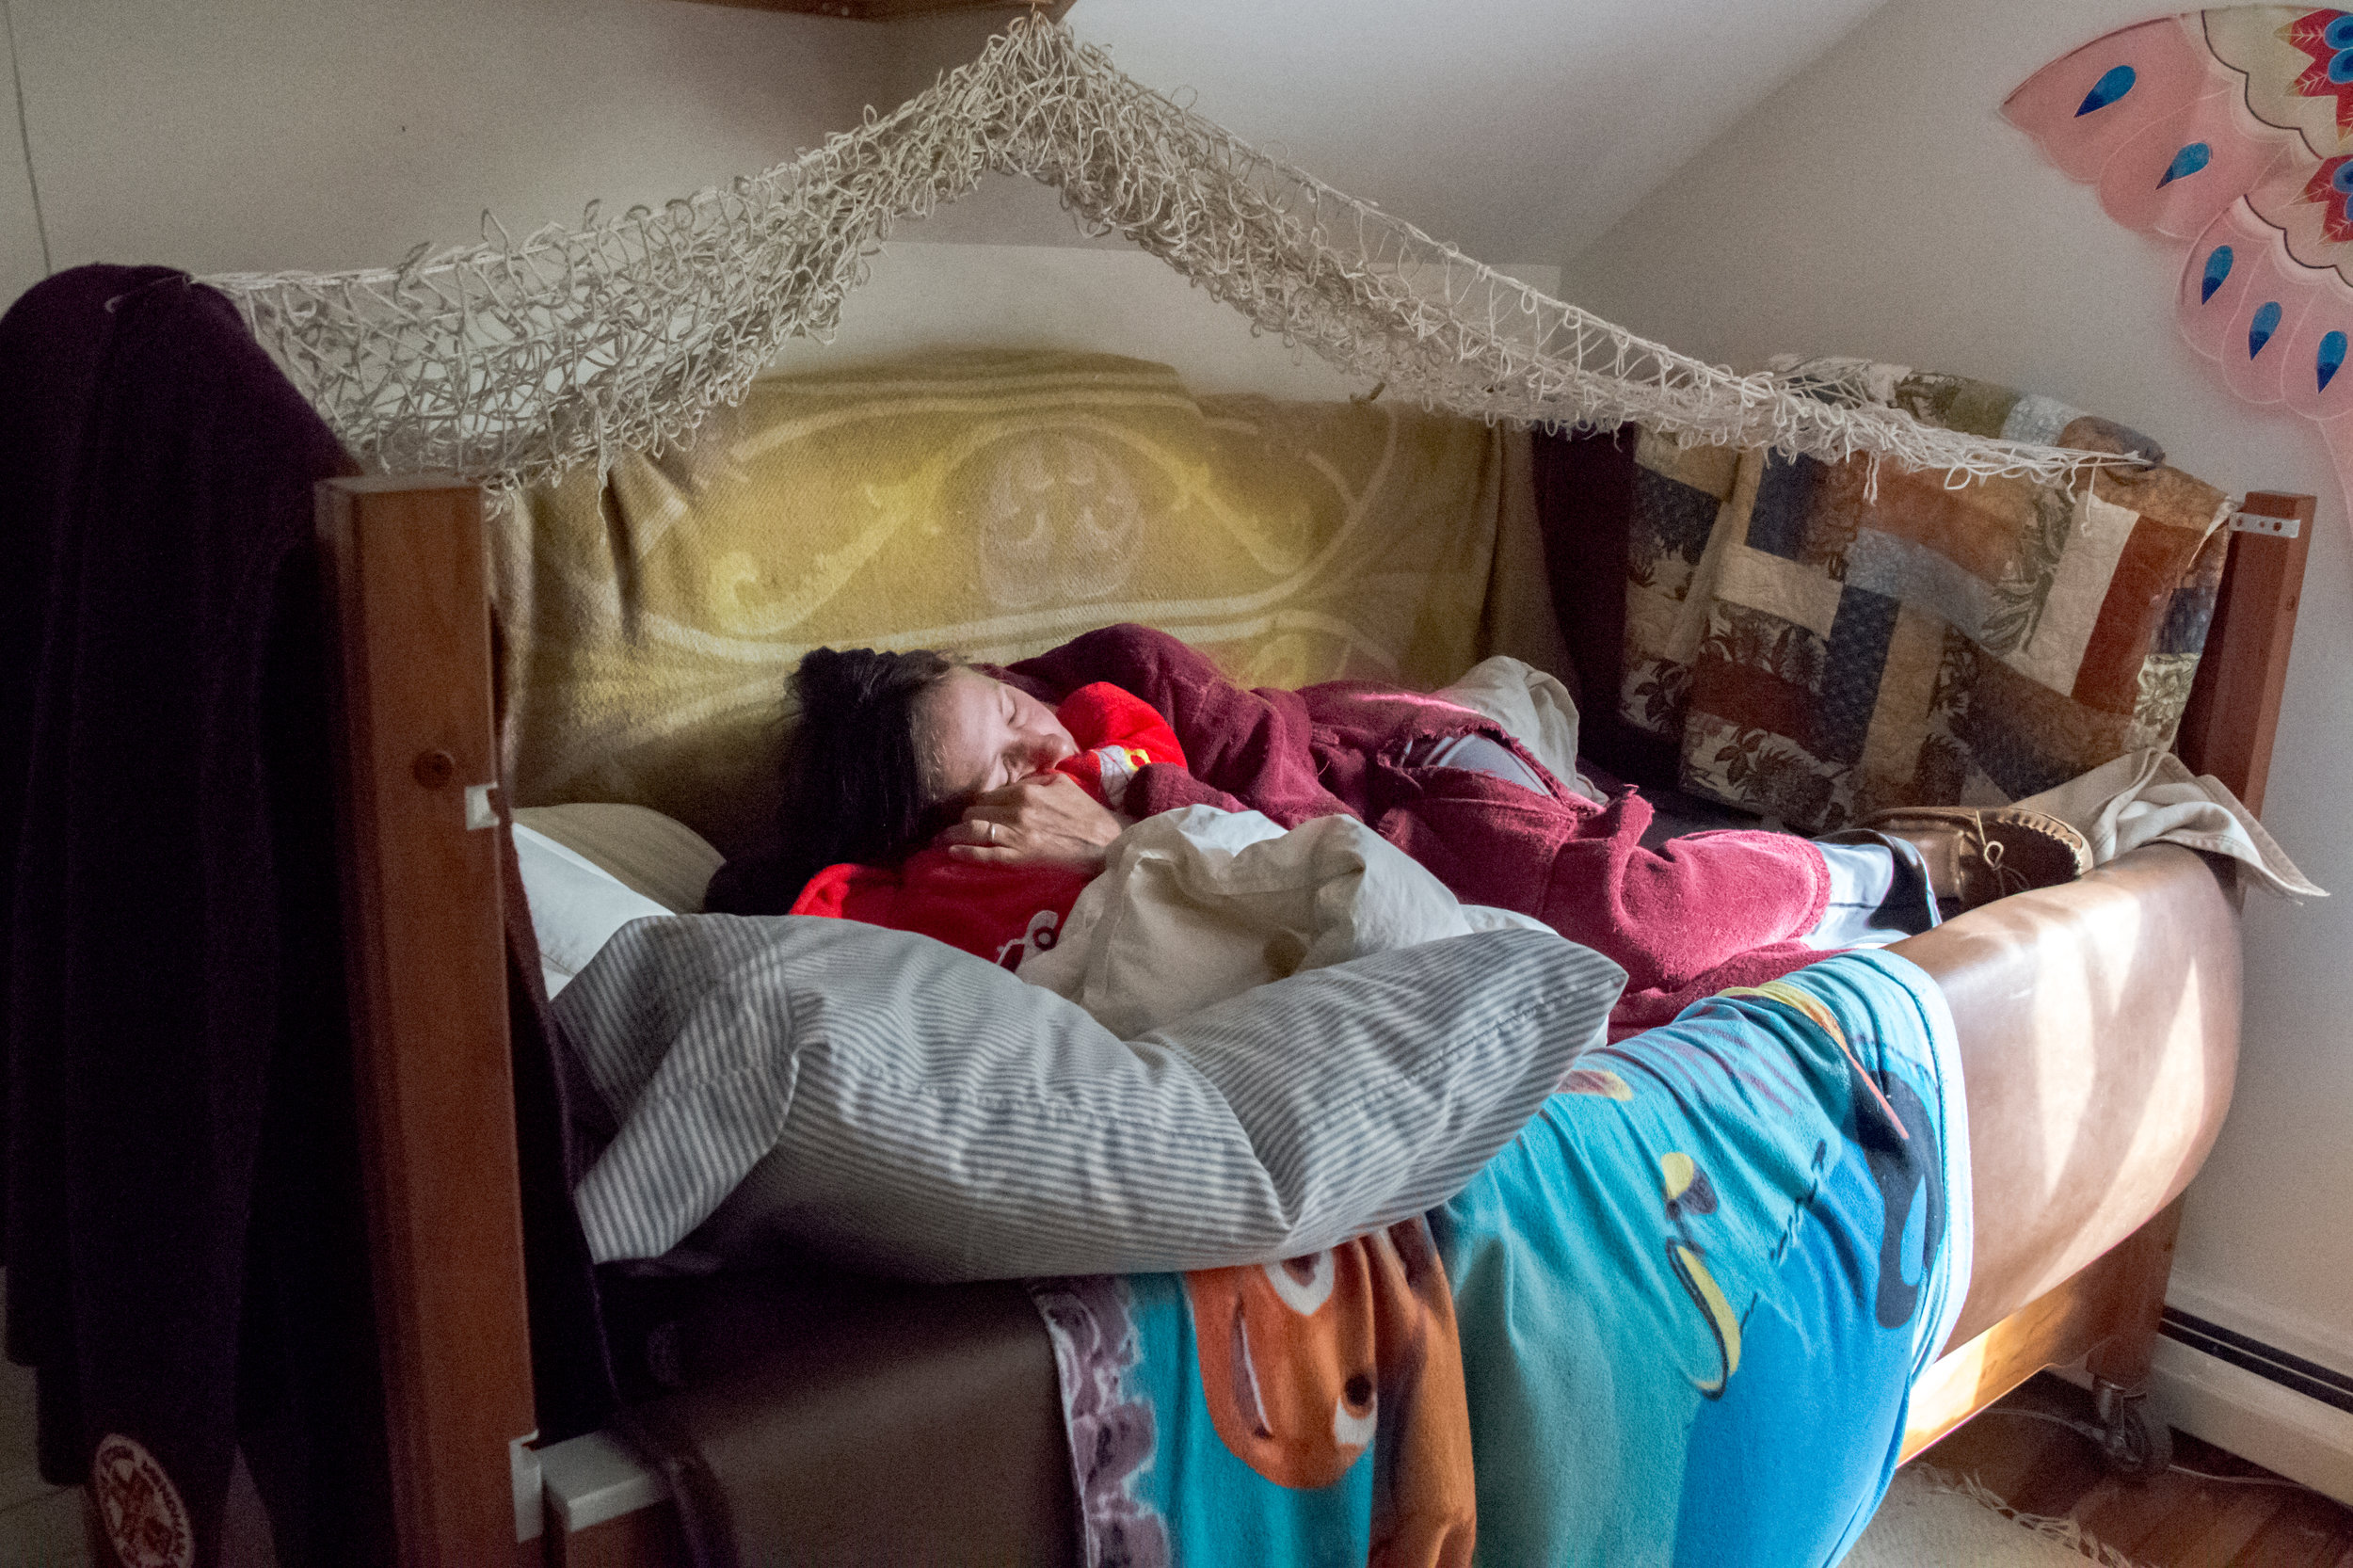 Christy Shake cuddles her son Calvin in his bed a few hours after he has had a grand mal seizure on September 30, 2017 in Brunswick, Maine. Though his number of daytime seizures has decreased dramatically since she began treating him with cannabis, he still has grand mal seizures in the early morning hours almost weekly.